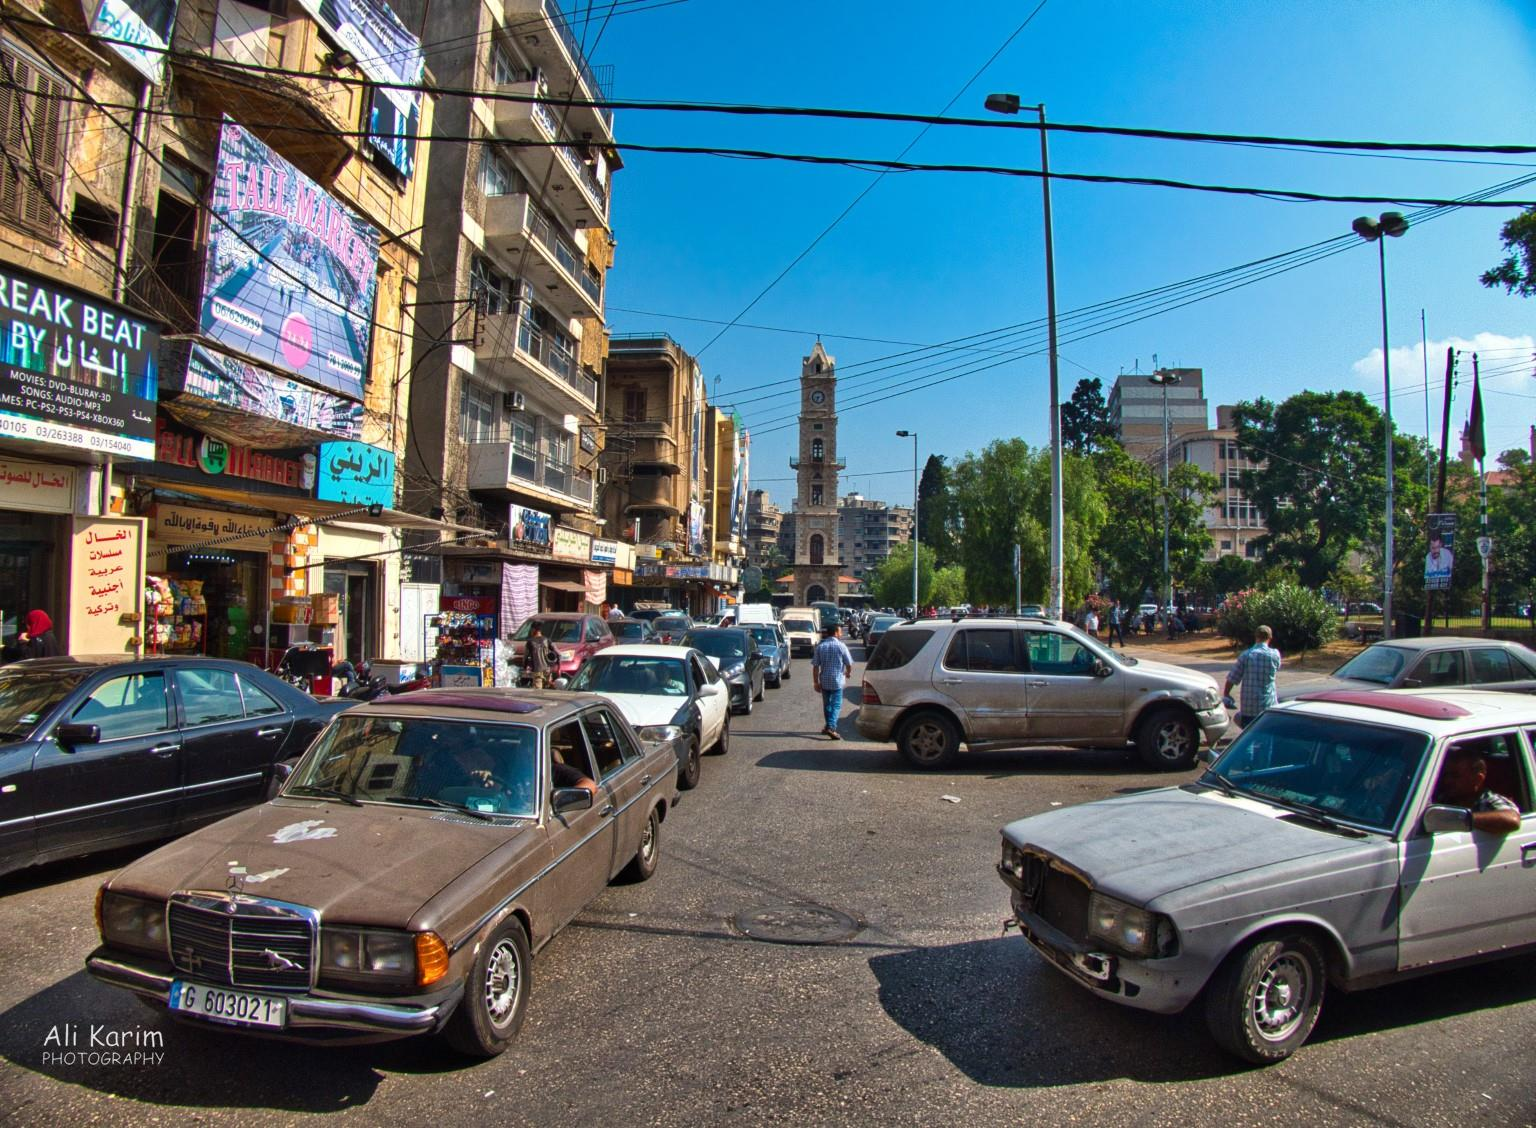 Tripoli Lebanon Sultan Abdul Hamid clock tower in the back in a large green park in the center of old Tripoli; is a landmark here. People like their Mercedes Benz's here; lot of older MB's here